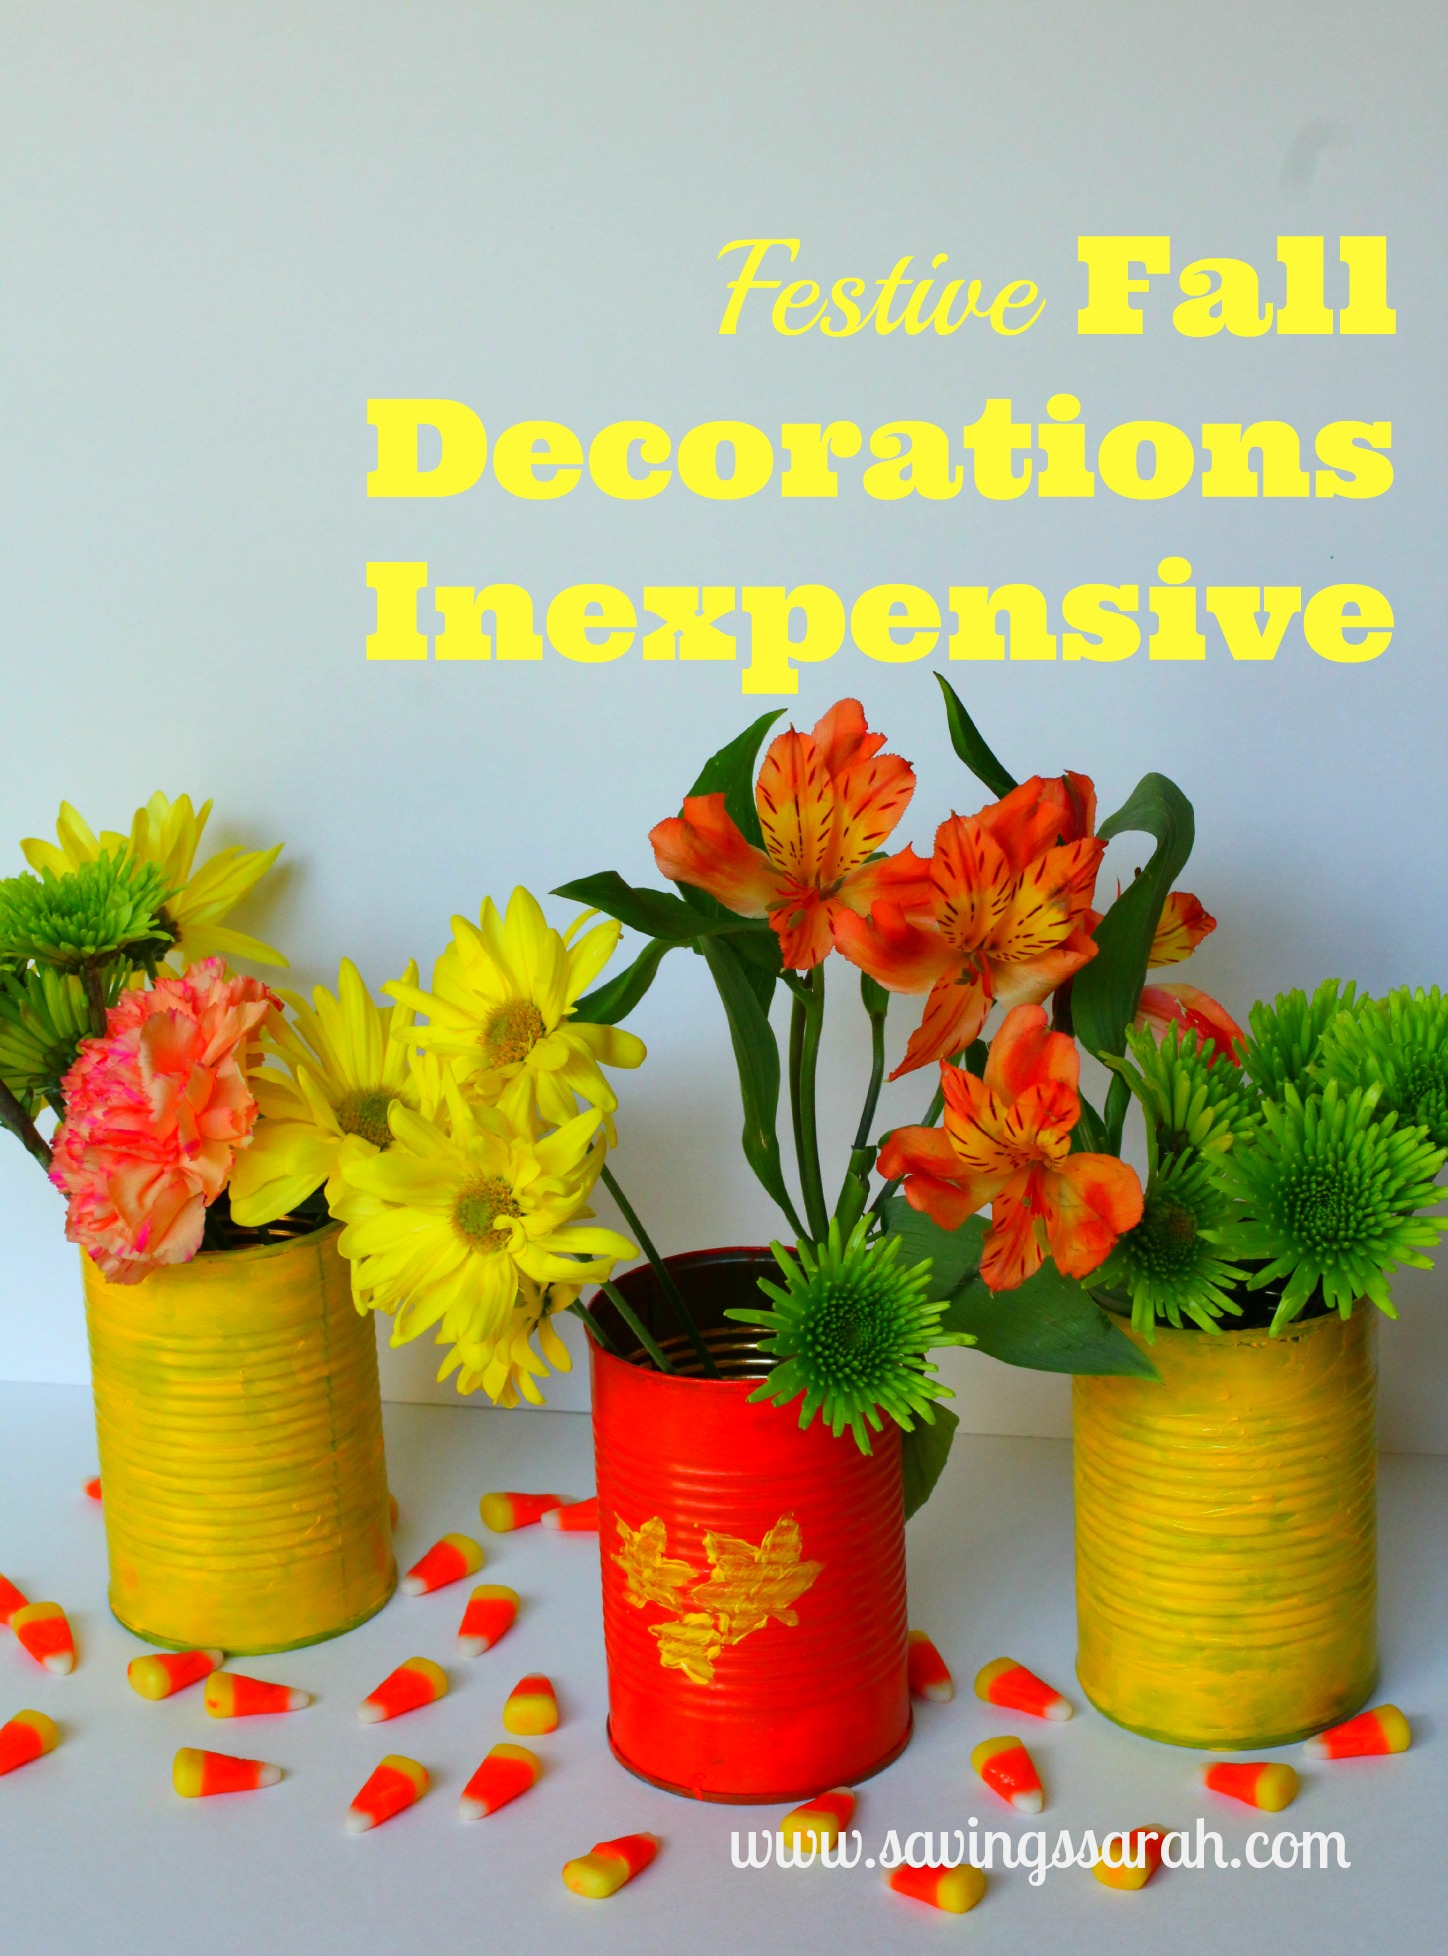 Festive Fall Decorations Inexpensive Fun